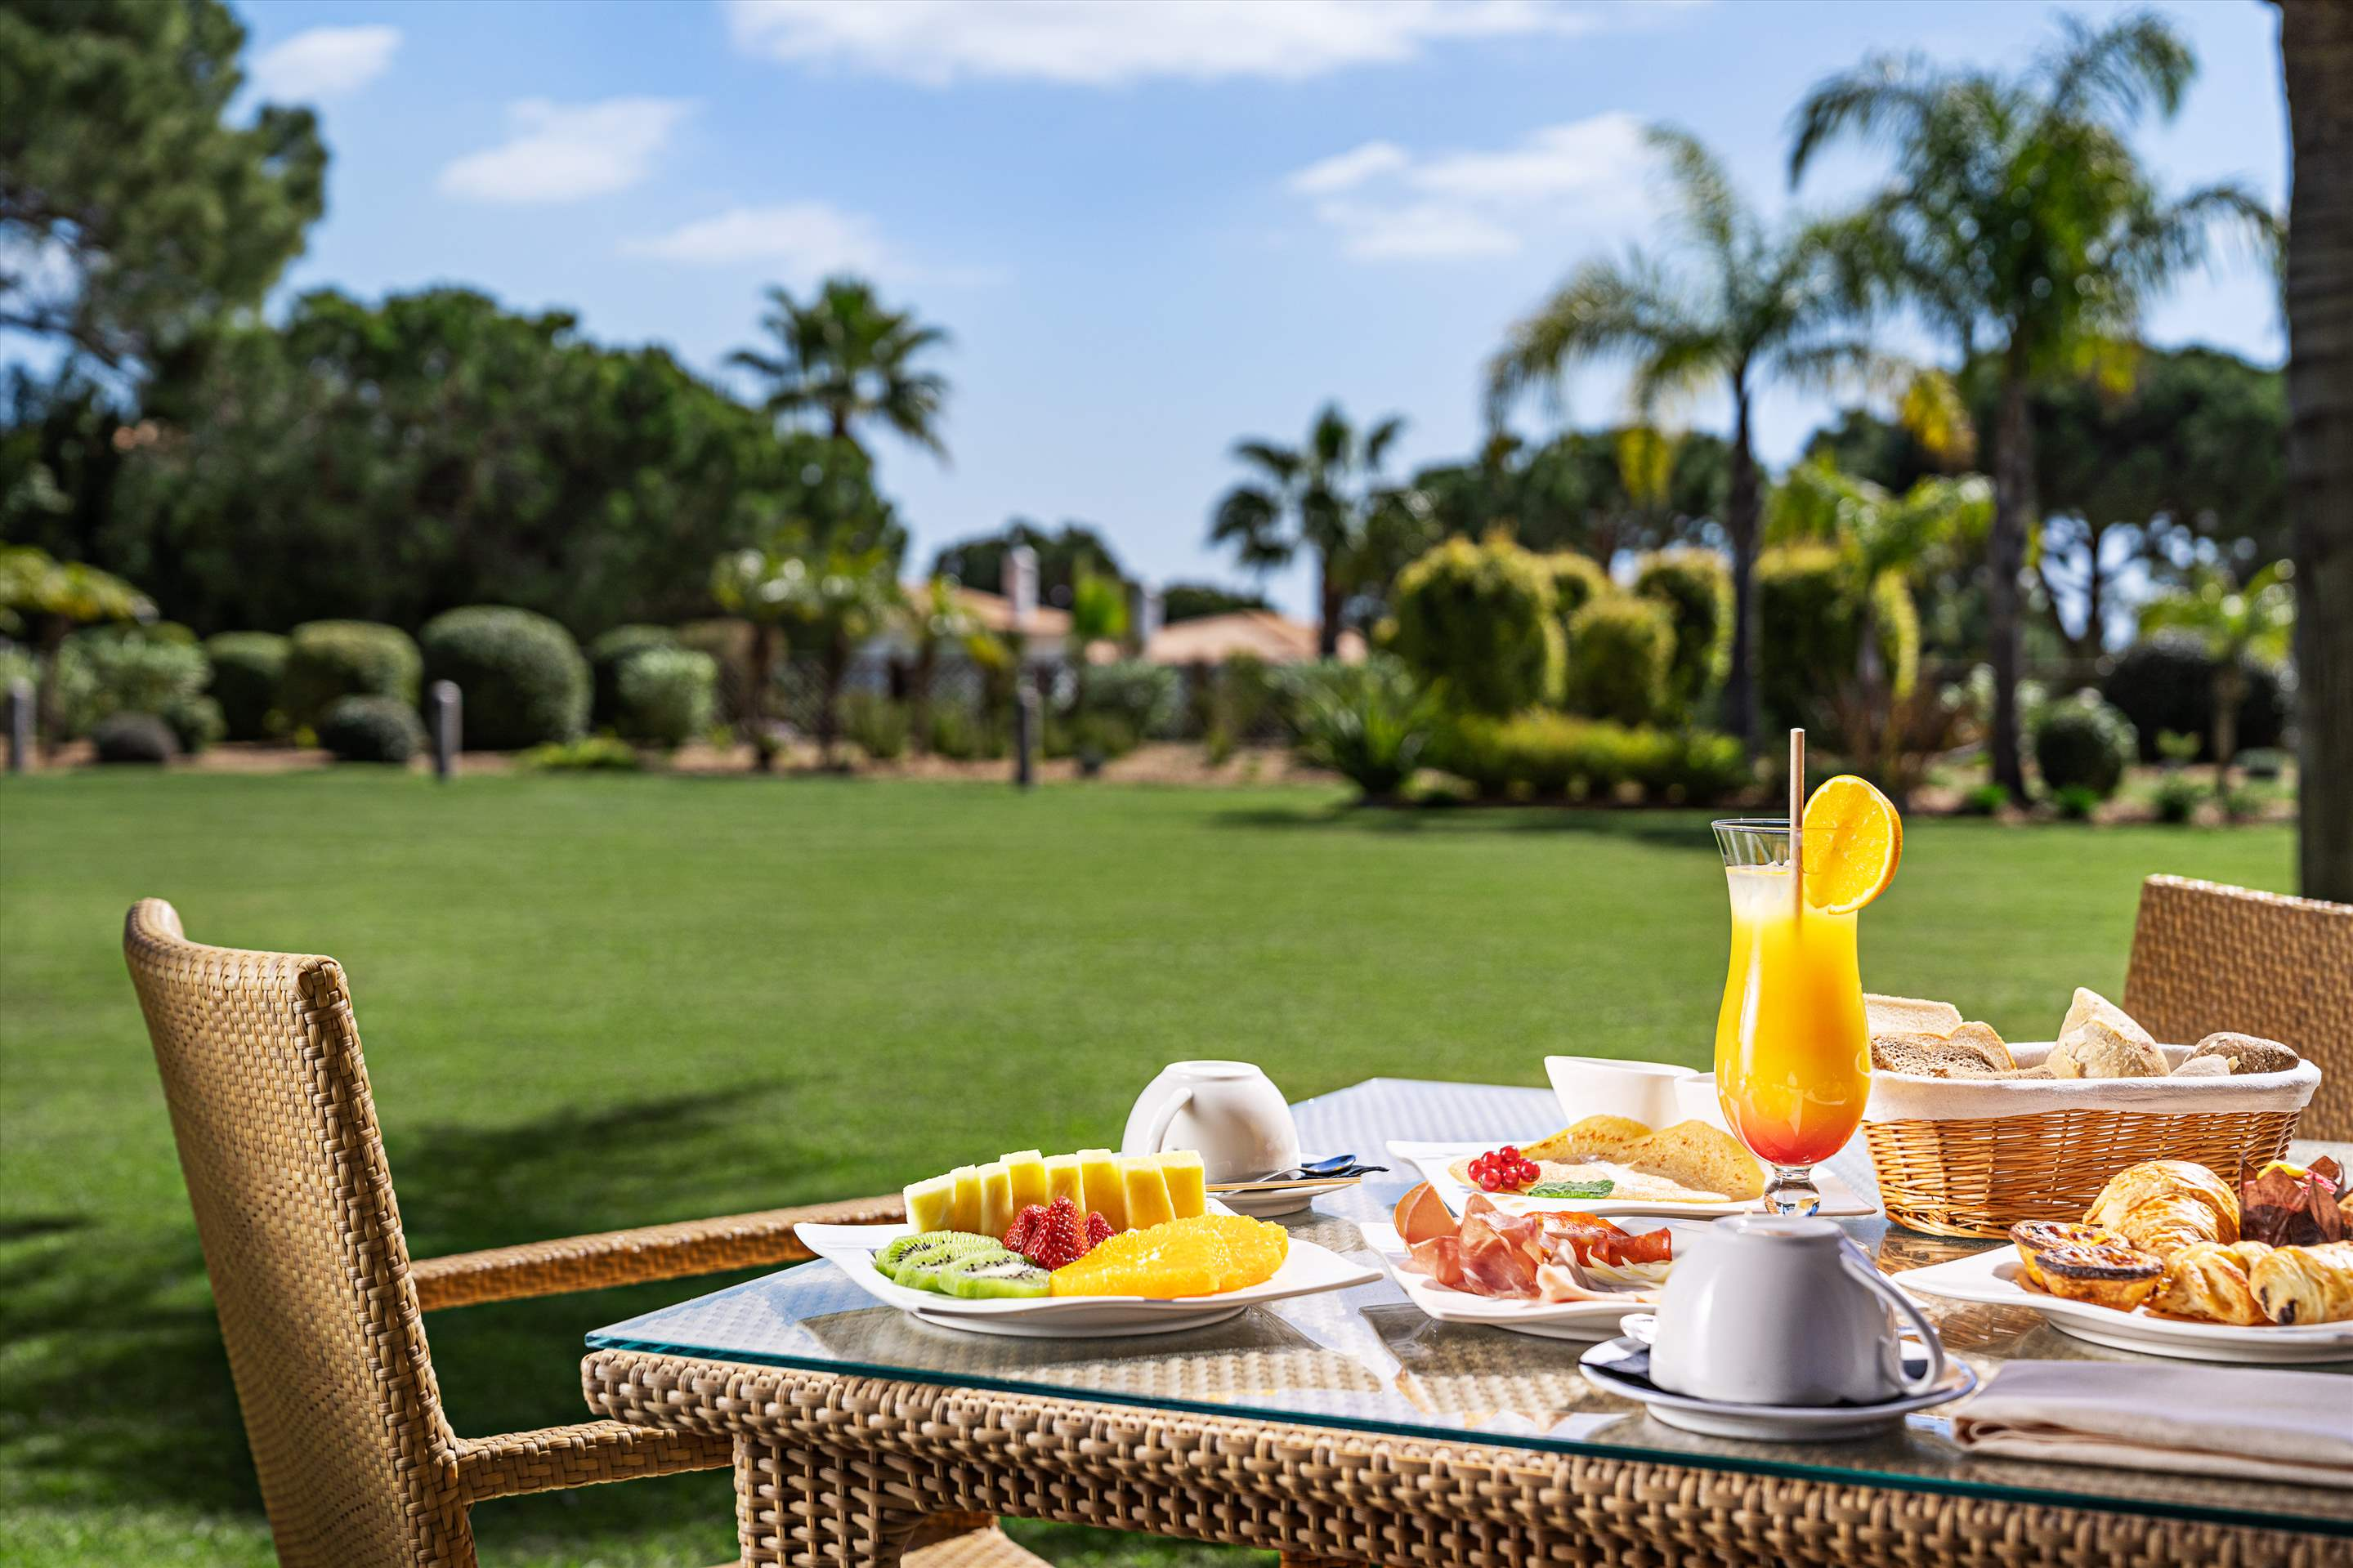 Wyndham Grand Algarve 2 Bedroom, Deluxe Family Suite, Pool Side, Room Only, 2 bedroom apartment in Wyndham Grand Algarve, Algarve Photo #30